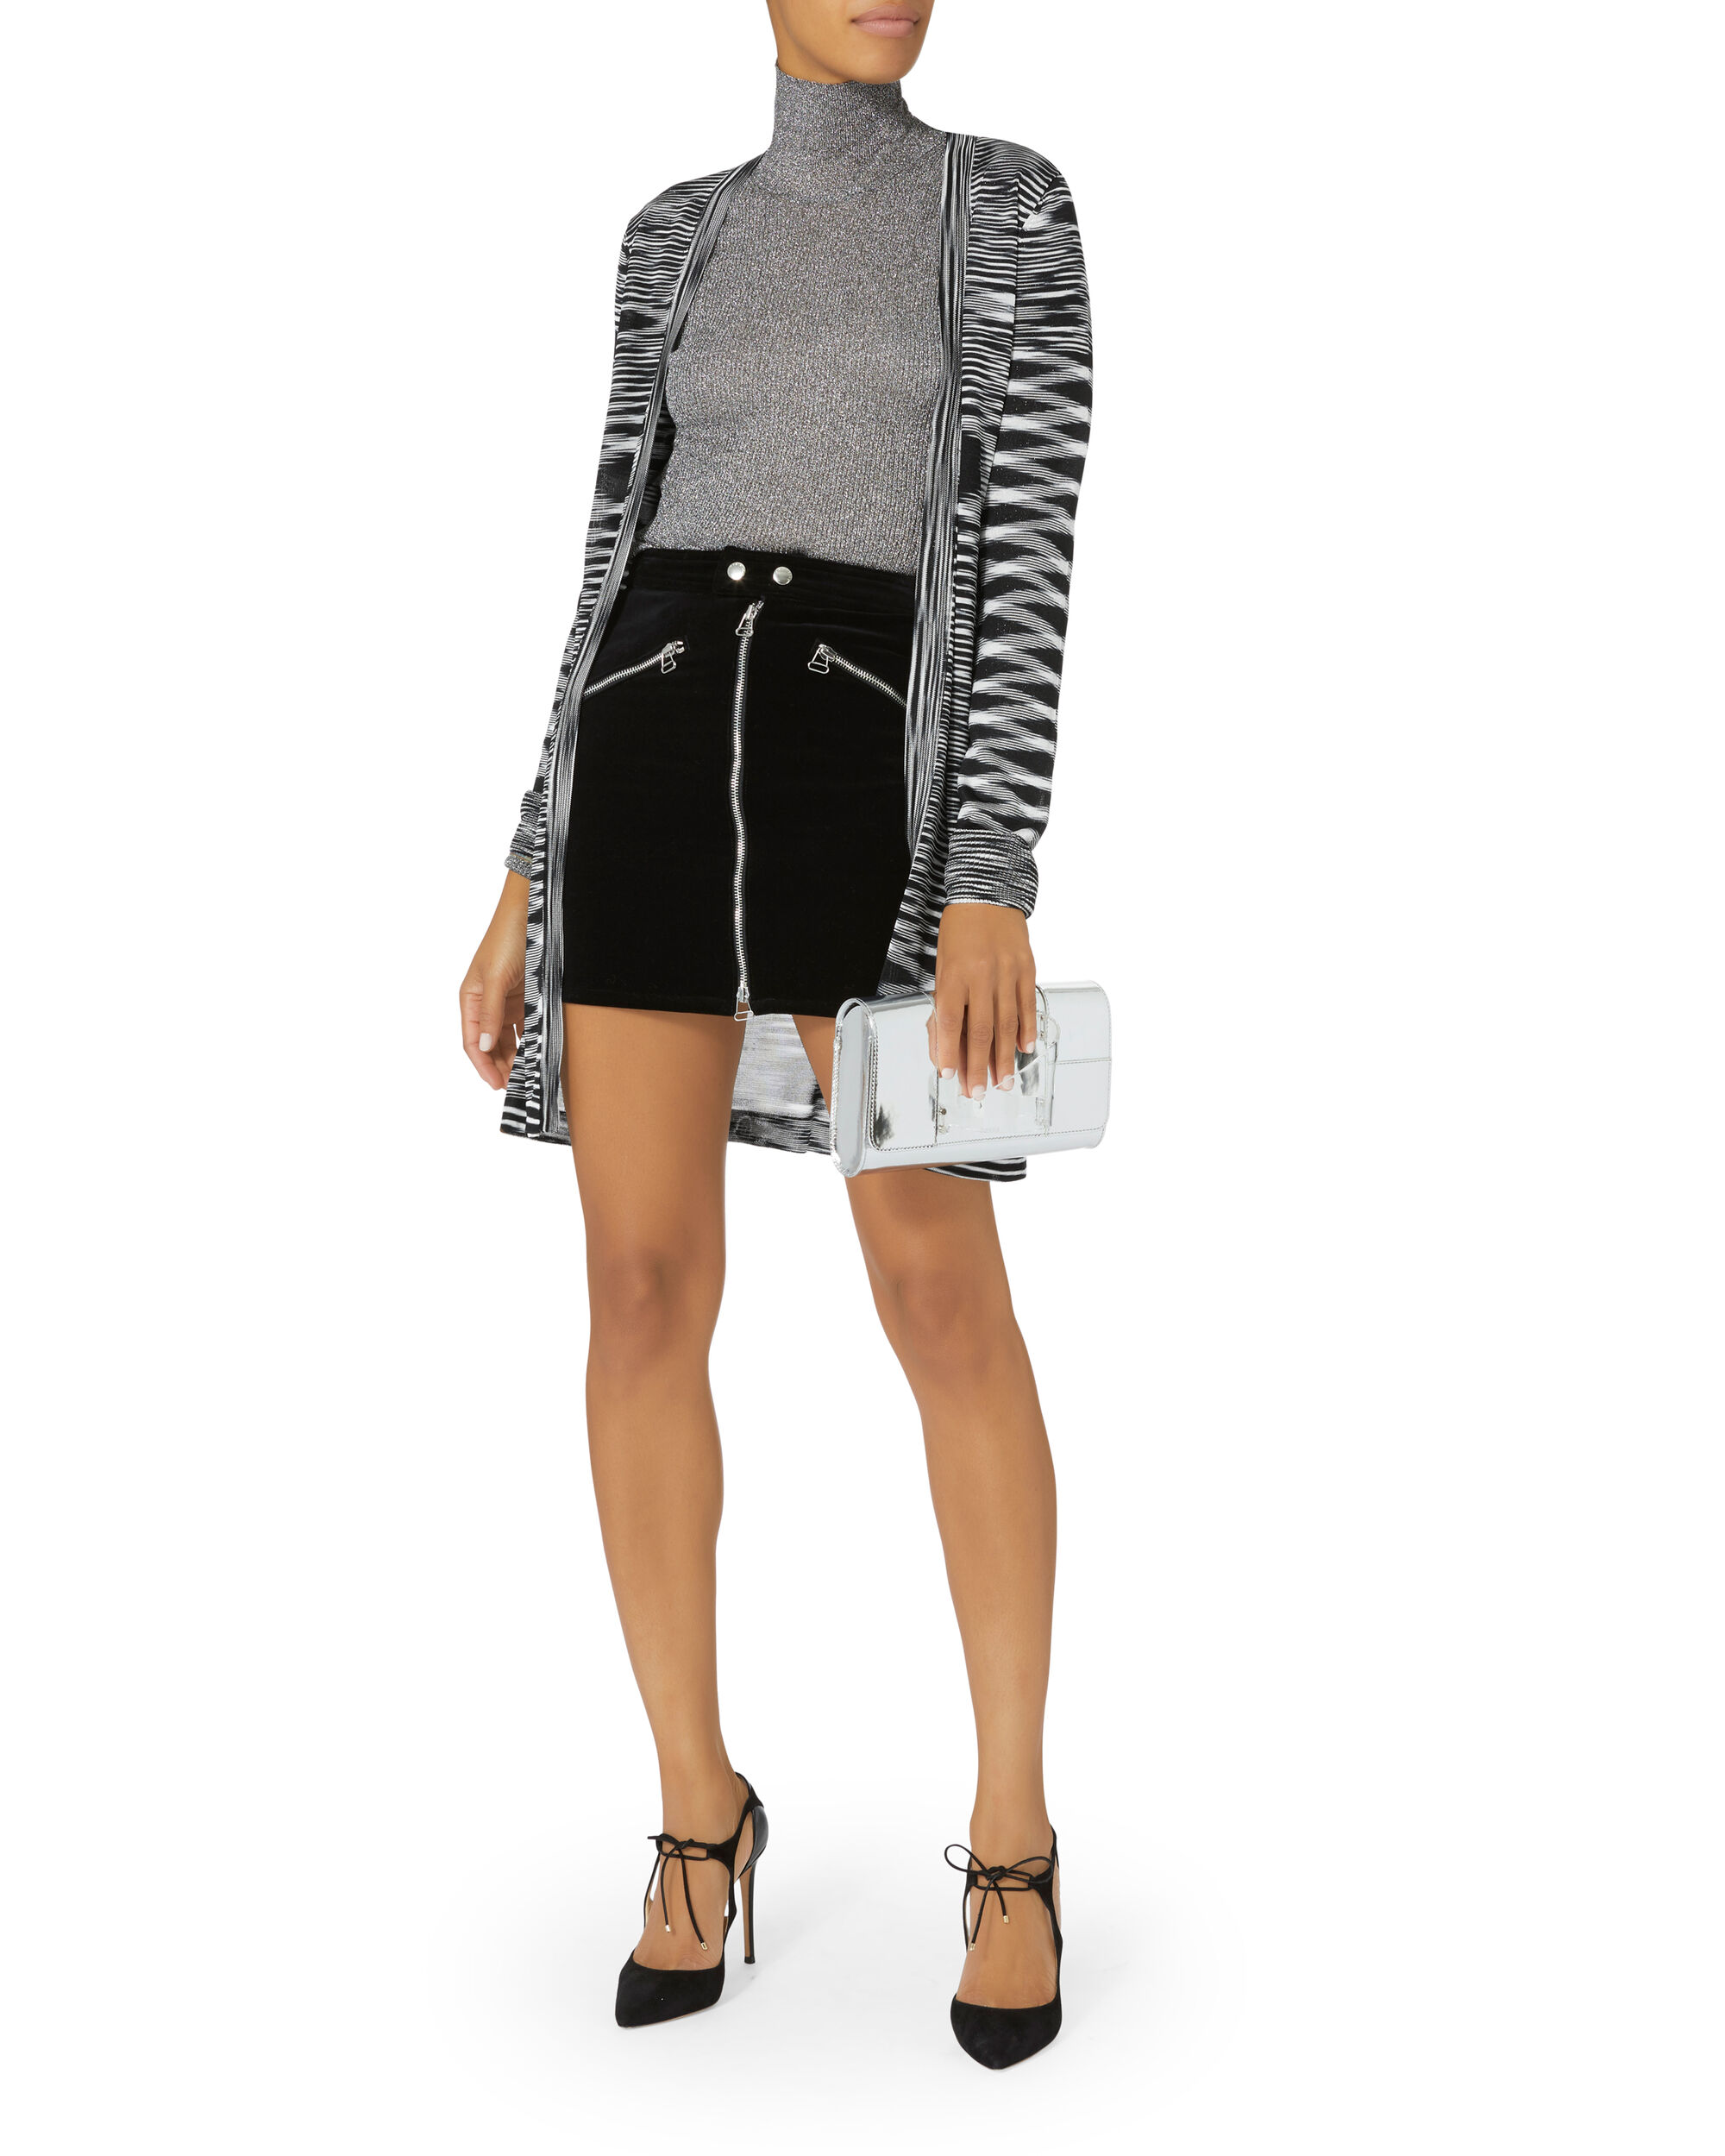 Space-Dyed Cardigan, BLK/WHT, hi-res